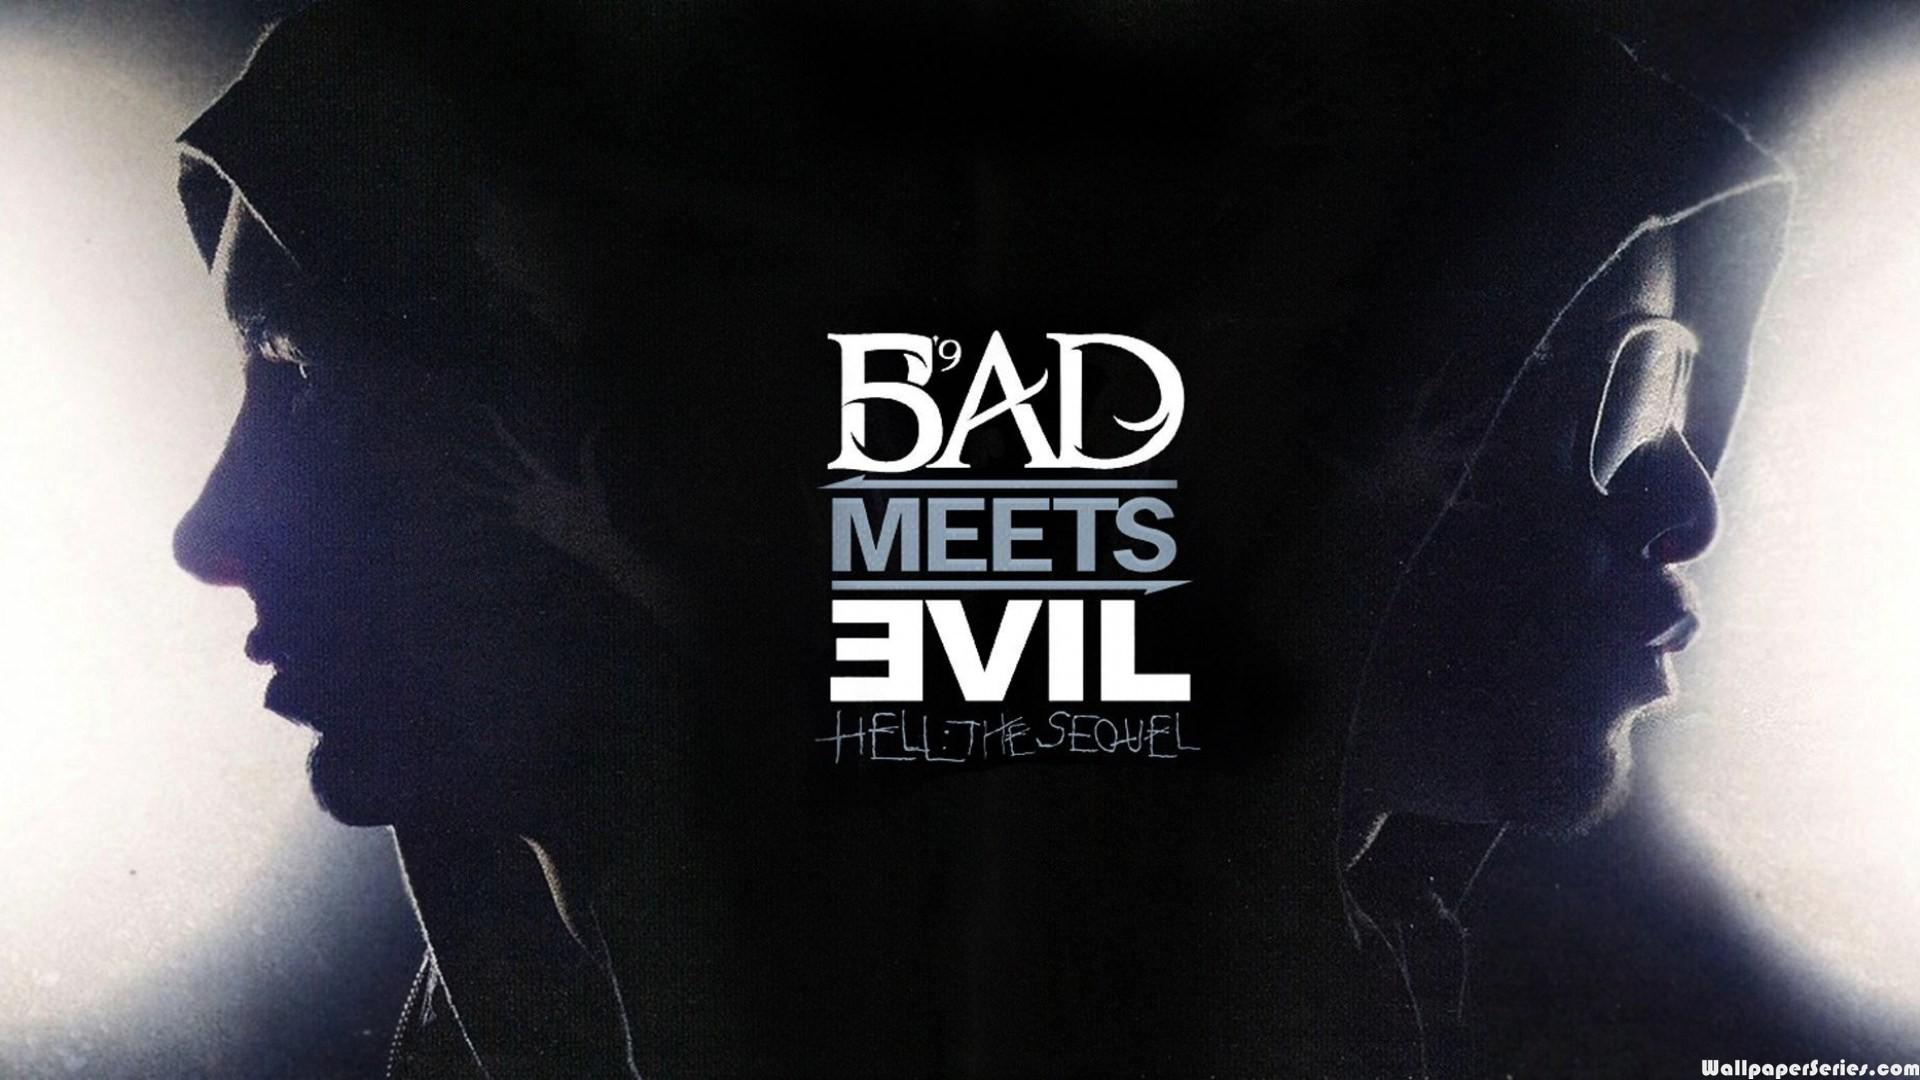 Good Morning Hd Wallpaper With Cute Baby Hd Eminem Bad Meets Evil Hd Wallpaper Download Free 139267